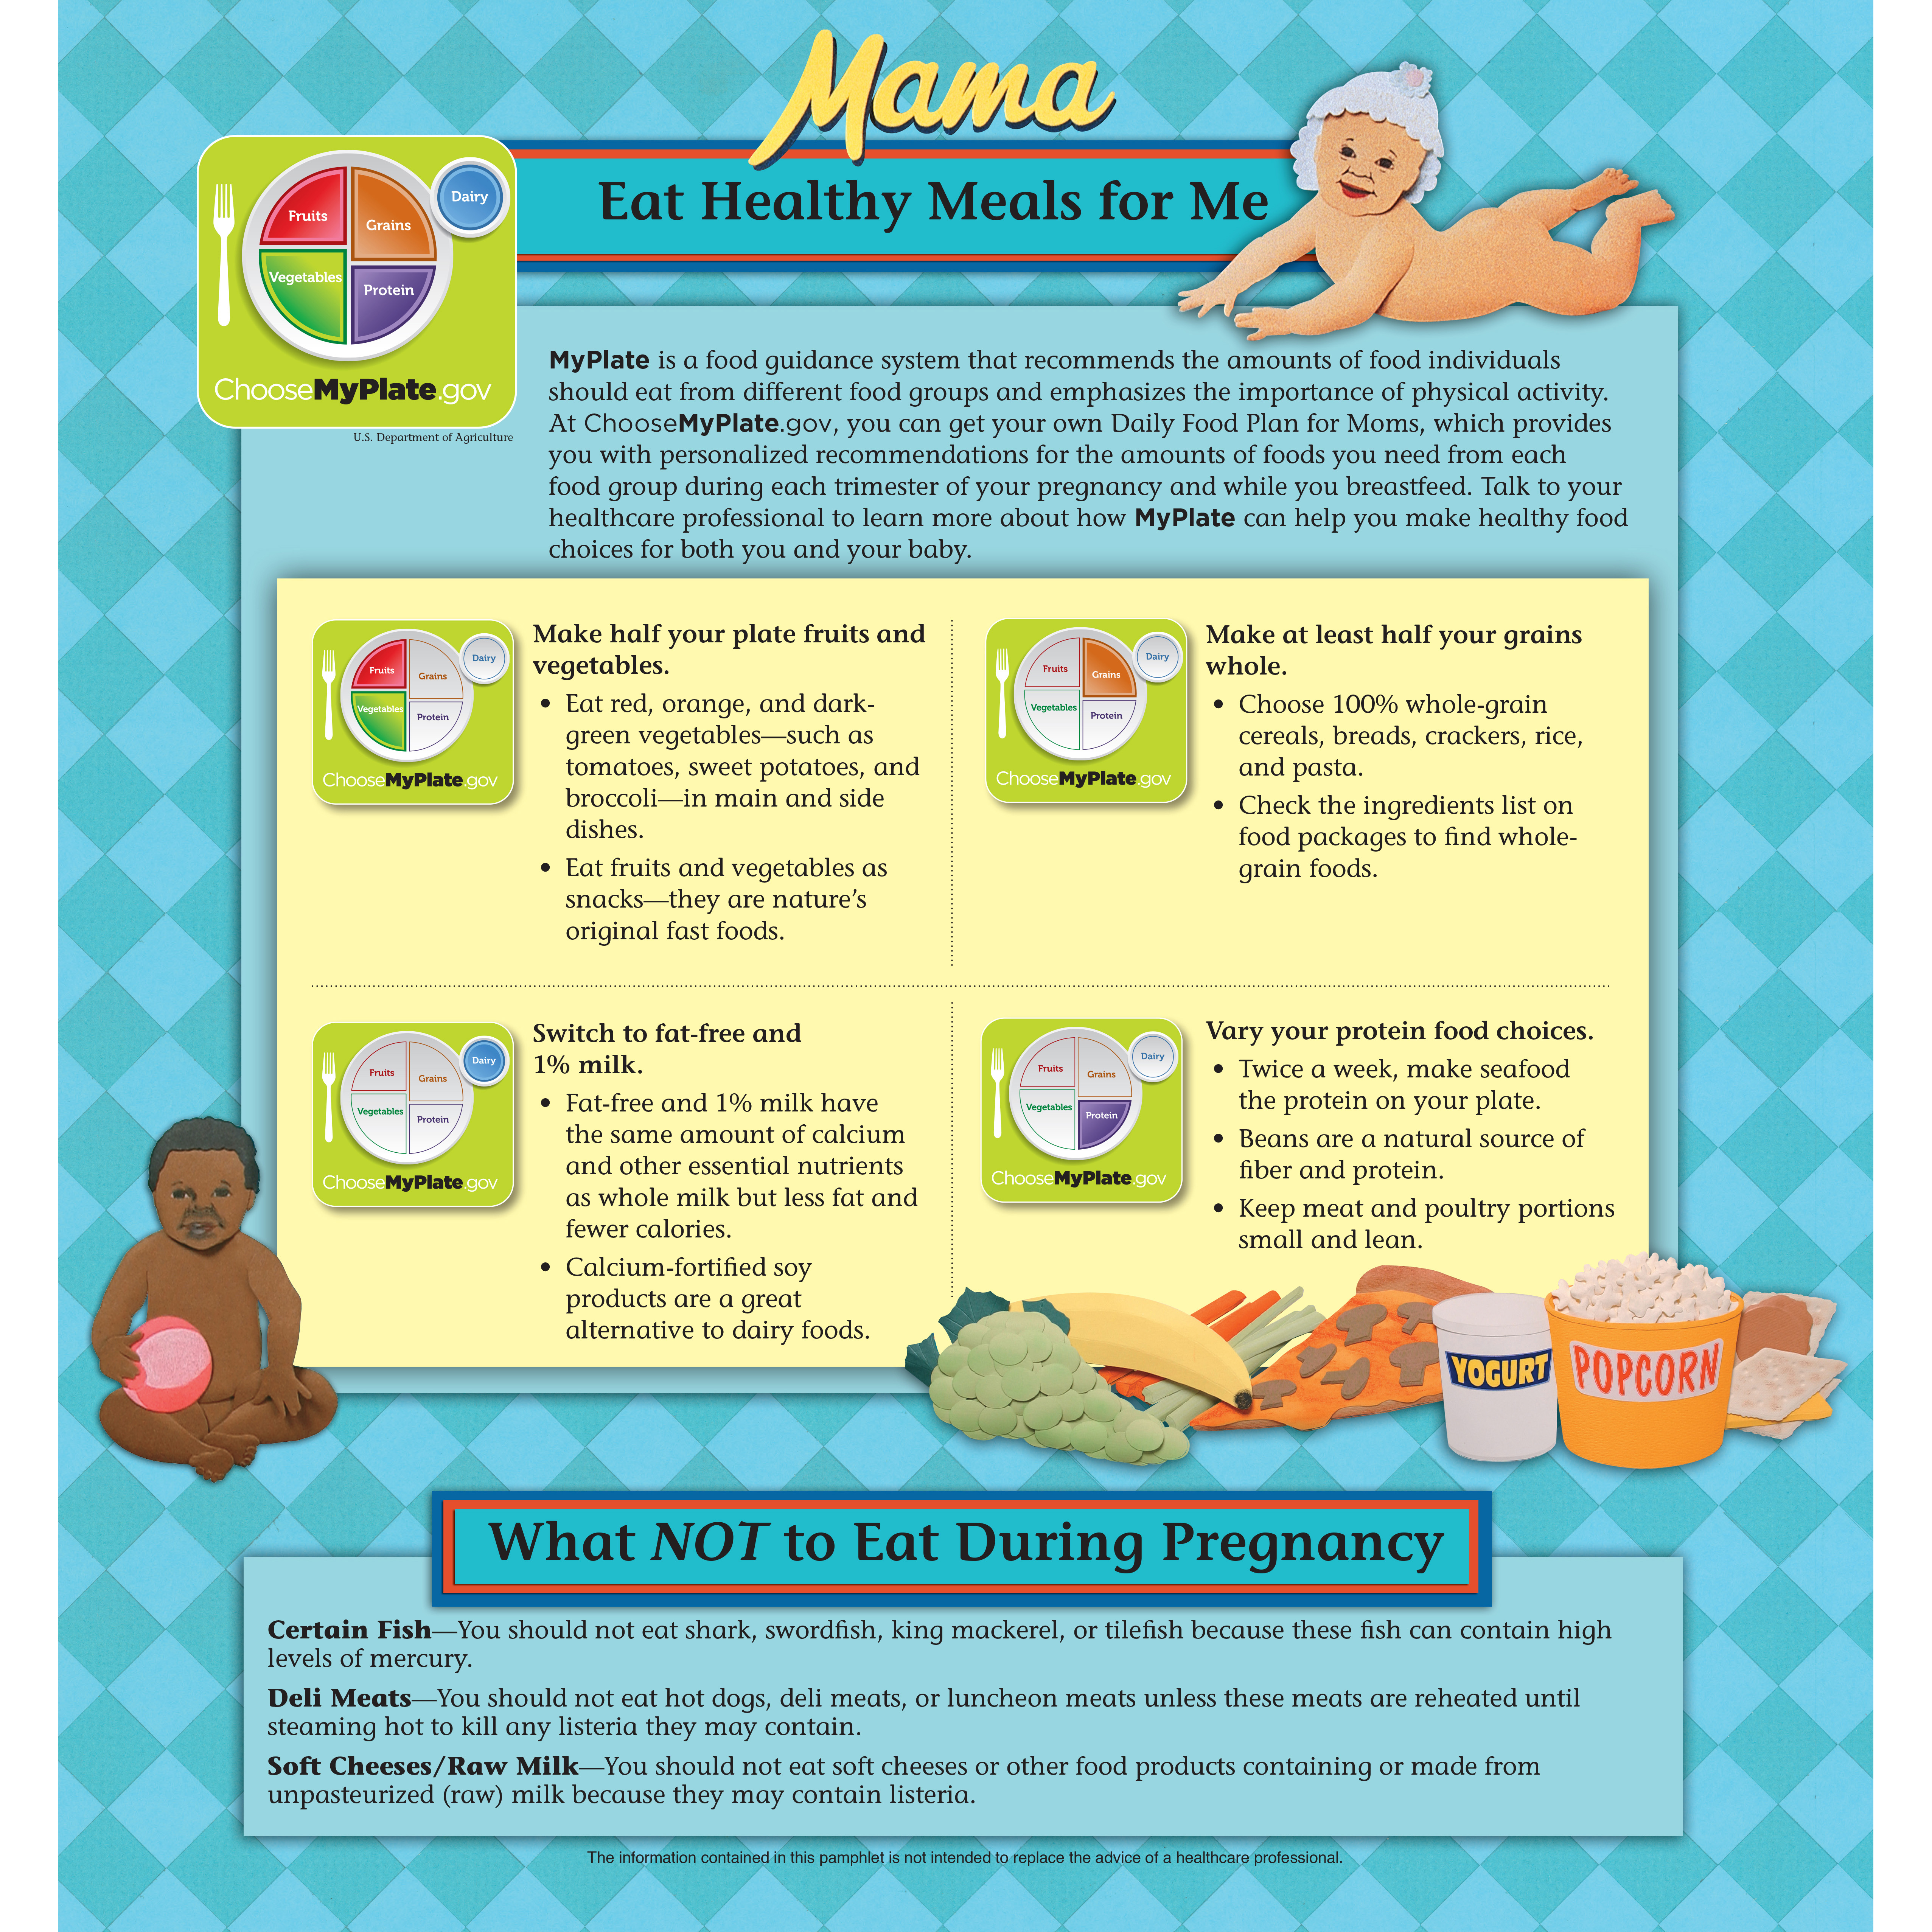 pamphlet/poster emphasizing pregnant mothers observing MyPlate guidelines and avoiding bad behaviors, fold-out poster image showing MyPlate guidelines, Childbirth Graphics, 38521